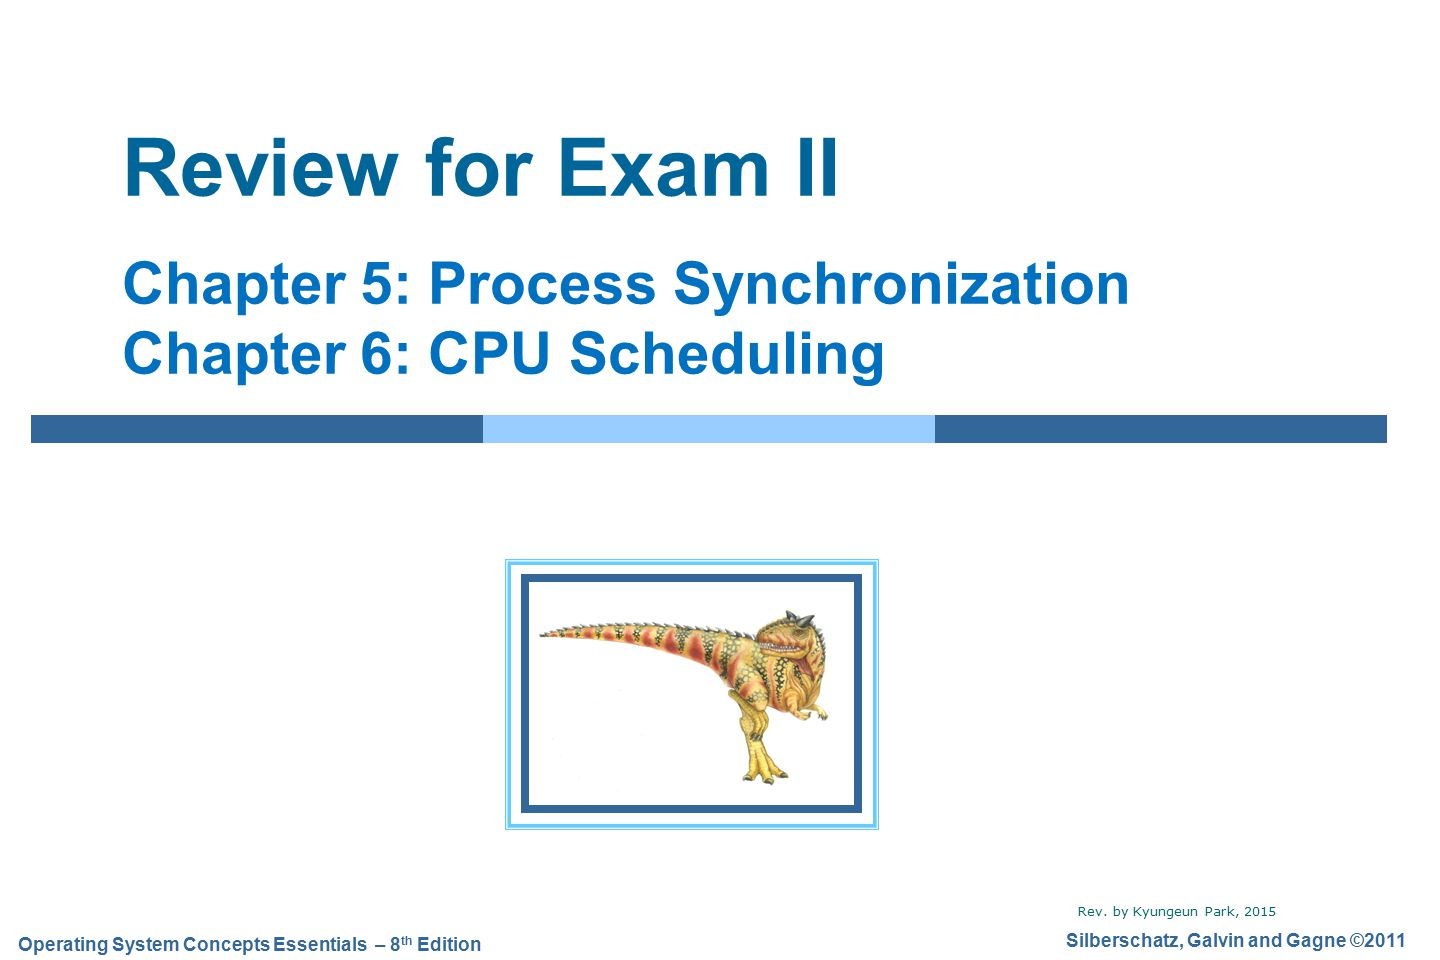 exam chapter 5 6 Chapter 5 1 explain the purpose of each of the following accounts, identify the normal balance of each, identify the financial statement (including where on the statement) each account is on: sales, sales r&a, sales discounts, purchases, purchases r&a, purchases discounts, freight in, freight out, cost of goods sold, and merchandise inventory.